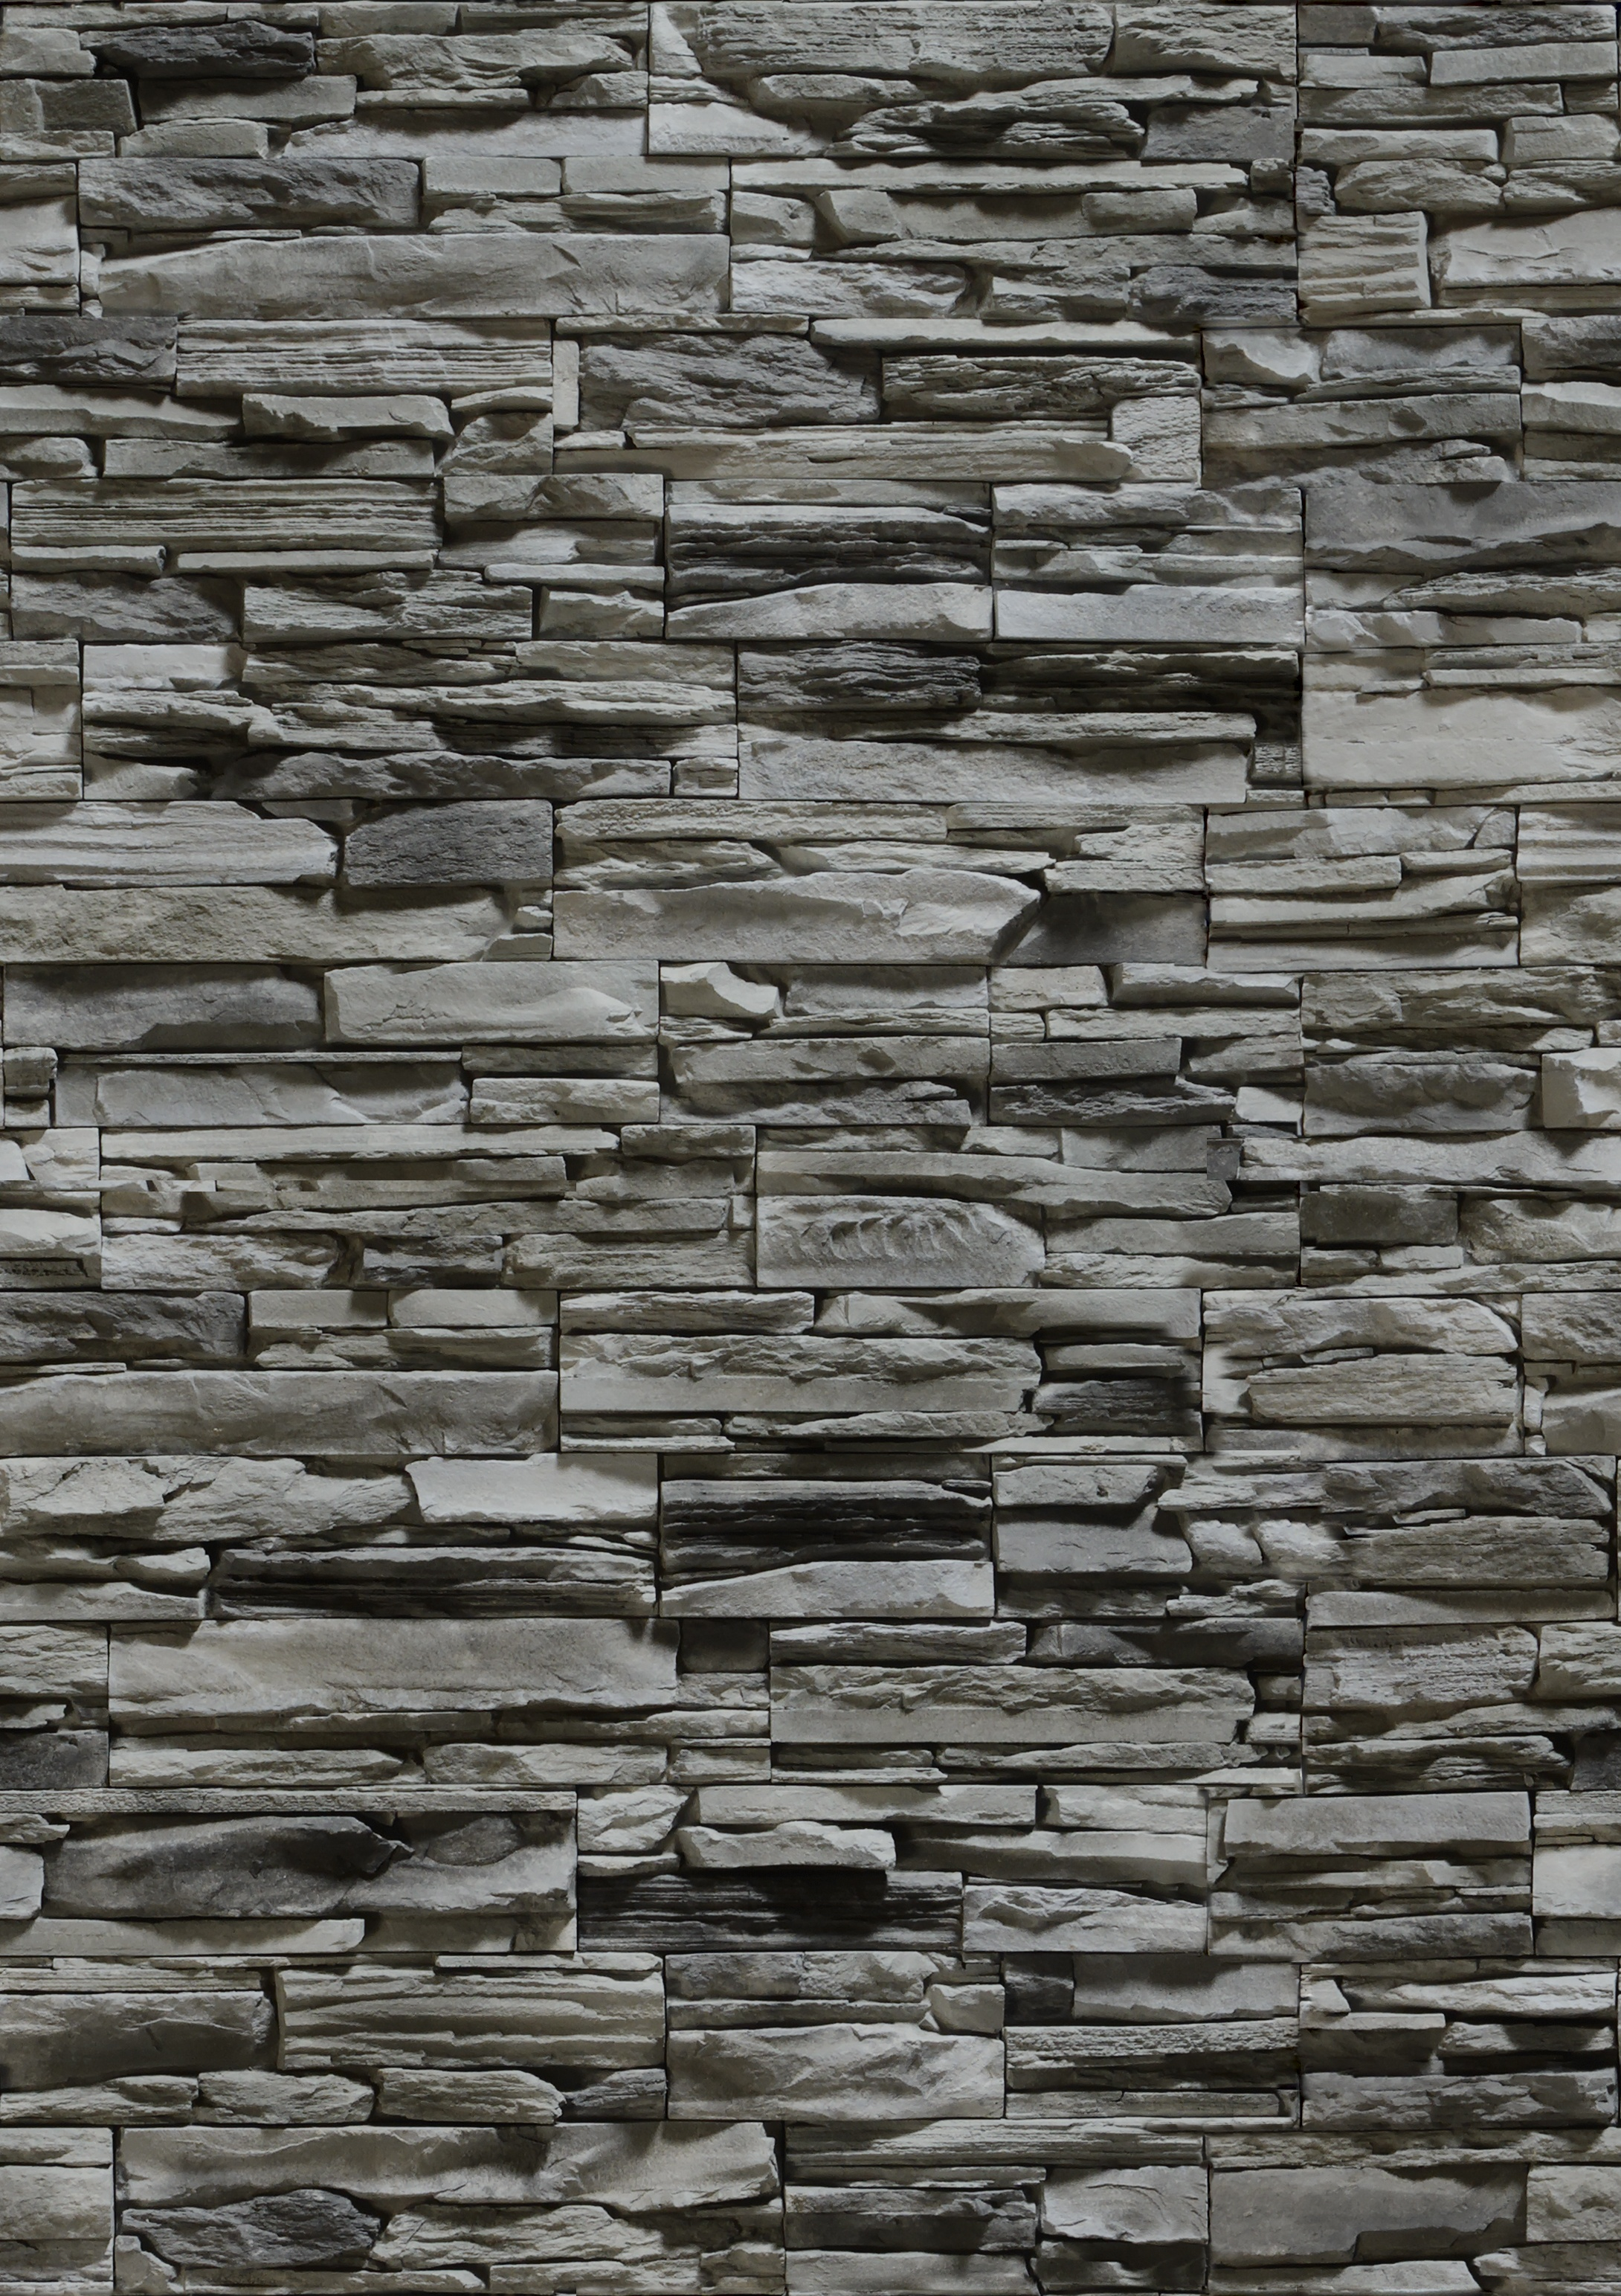 Stone Wall Texture : Wild stone wall texture download